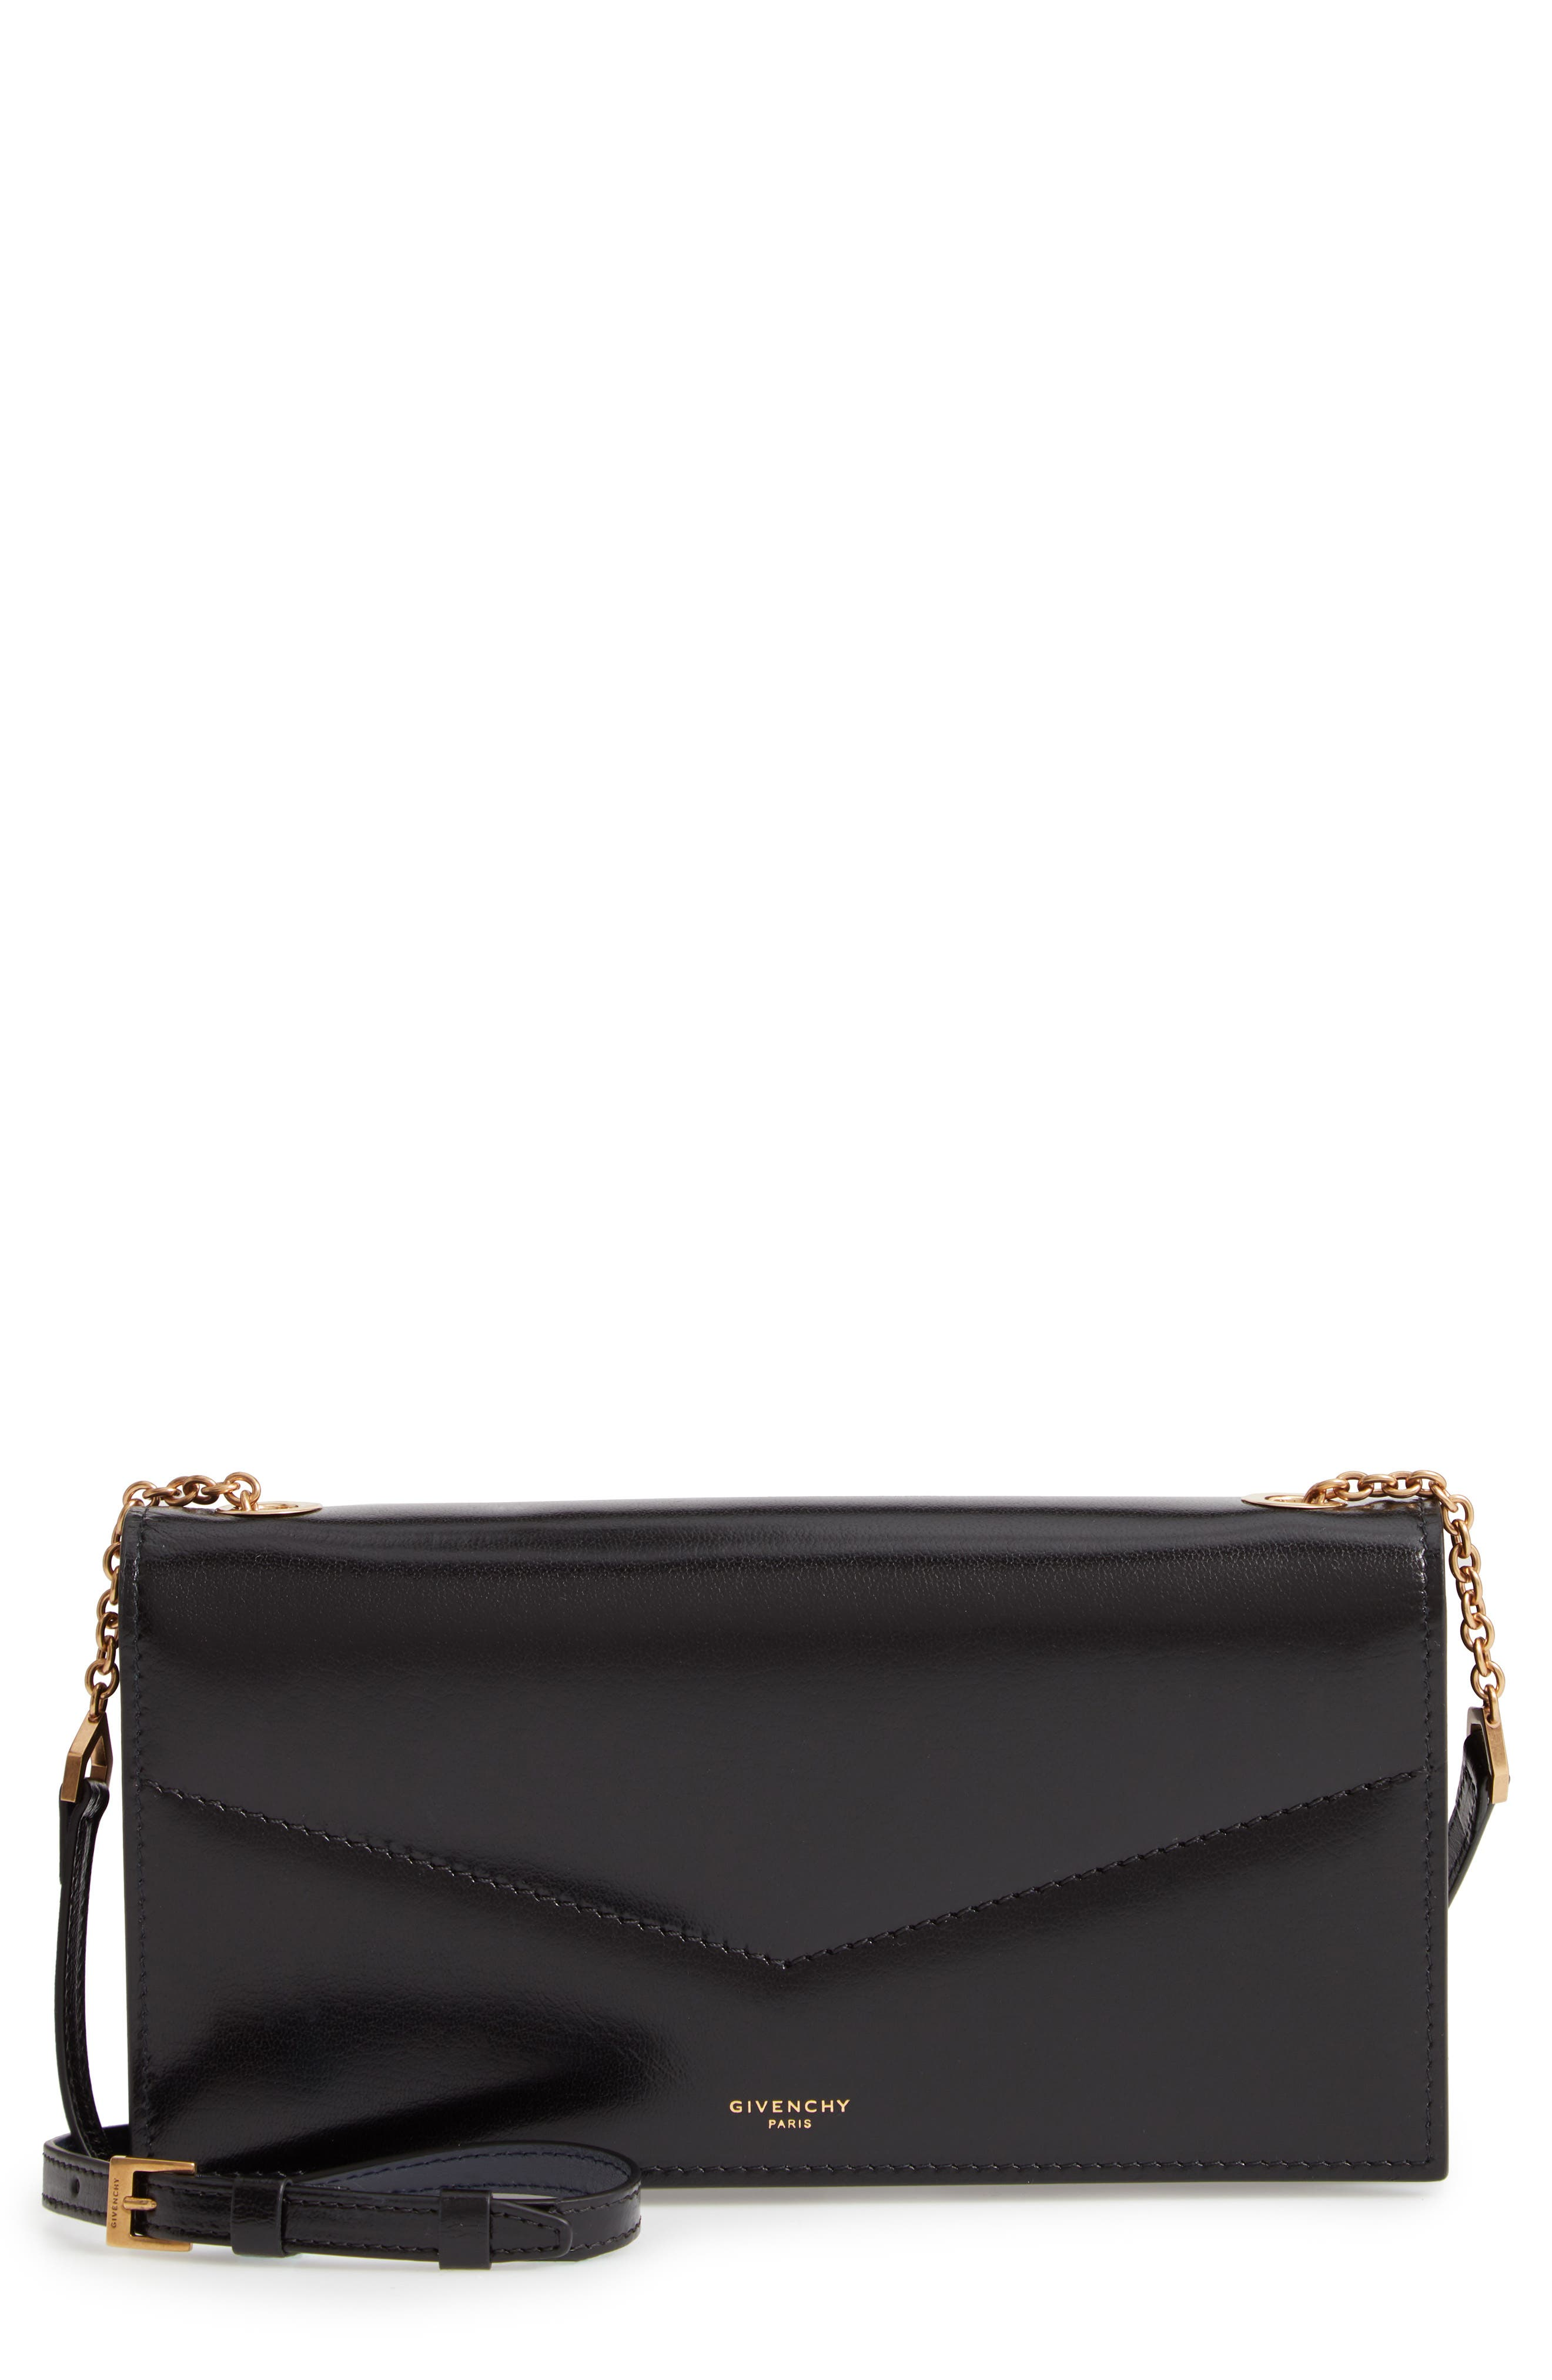 GIVENCHY Leather Wallet on a Chain, Main, color, BLACK